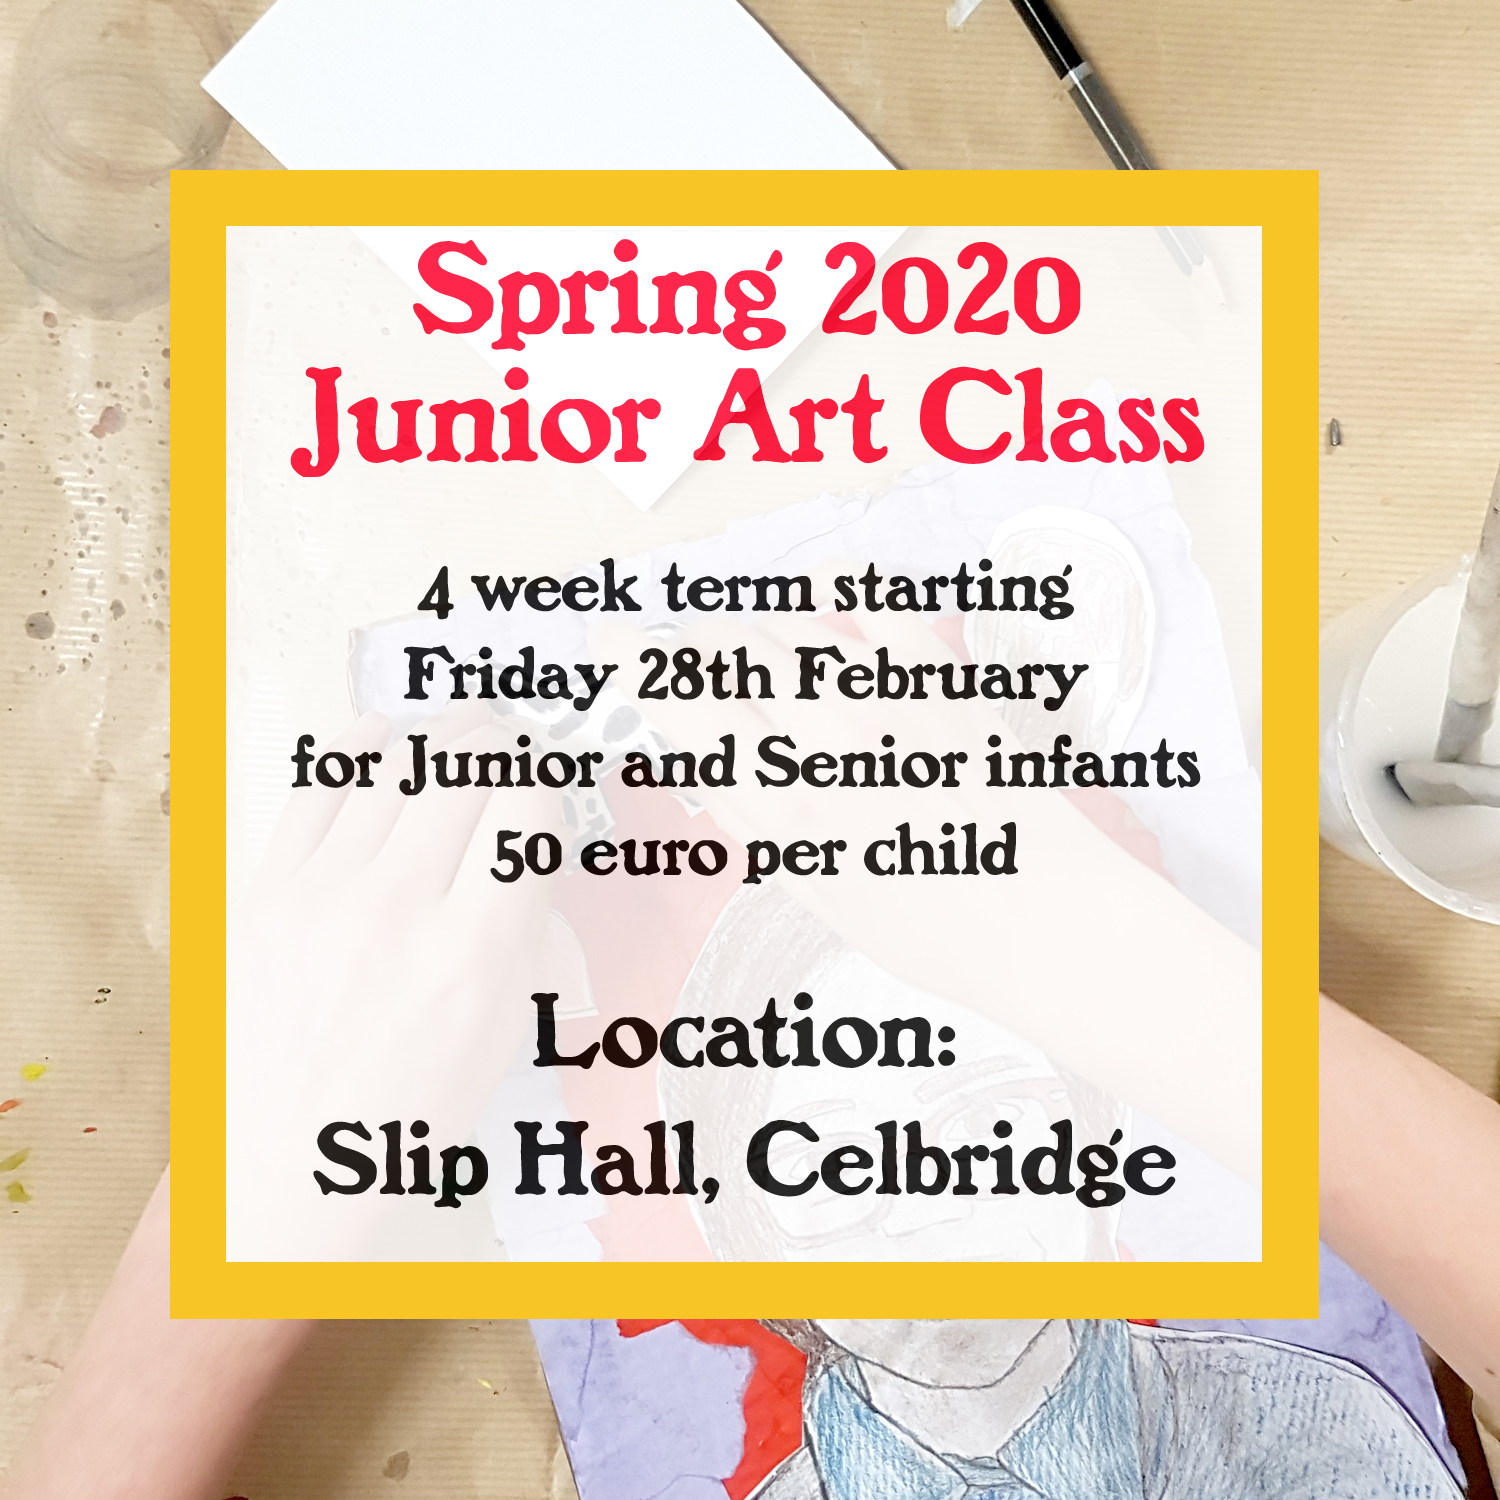 spring term of junior art classes in The Slip Hall Celbridge